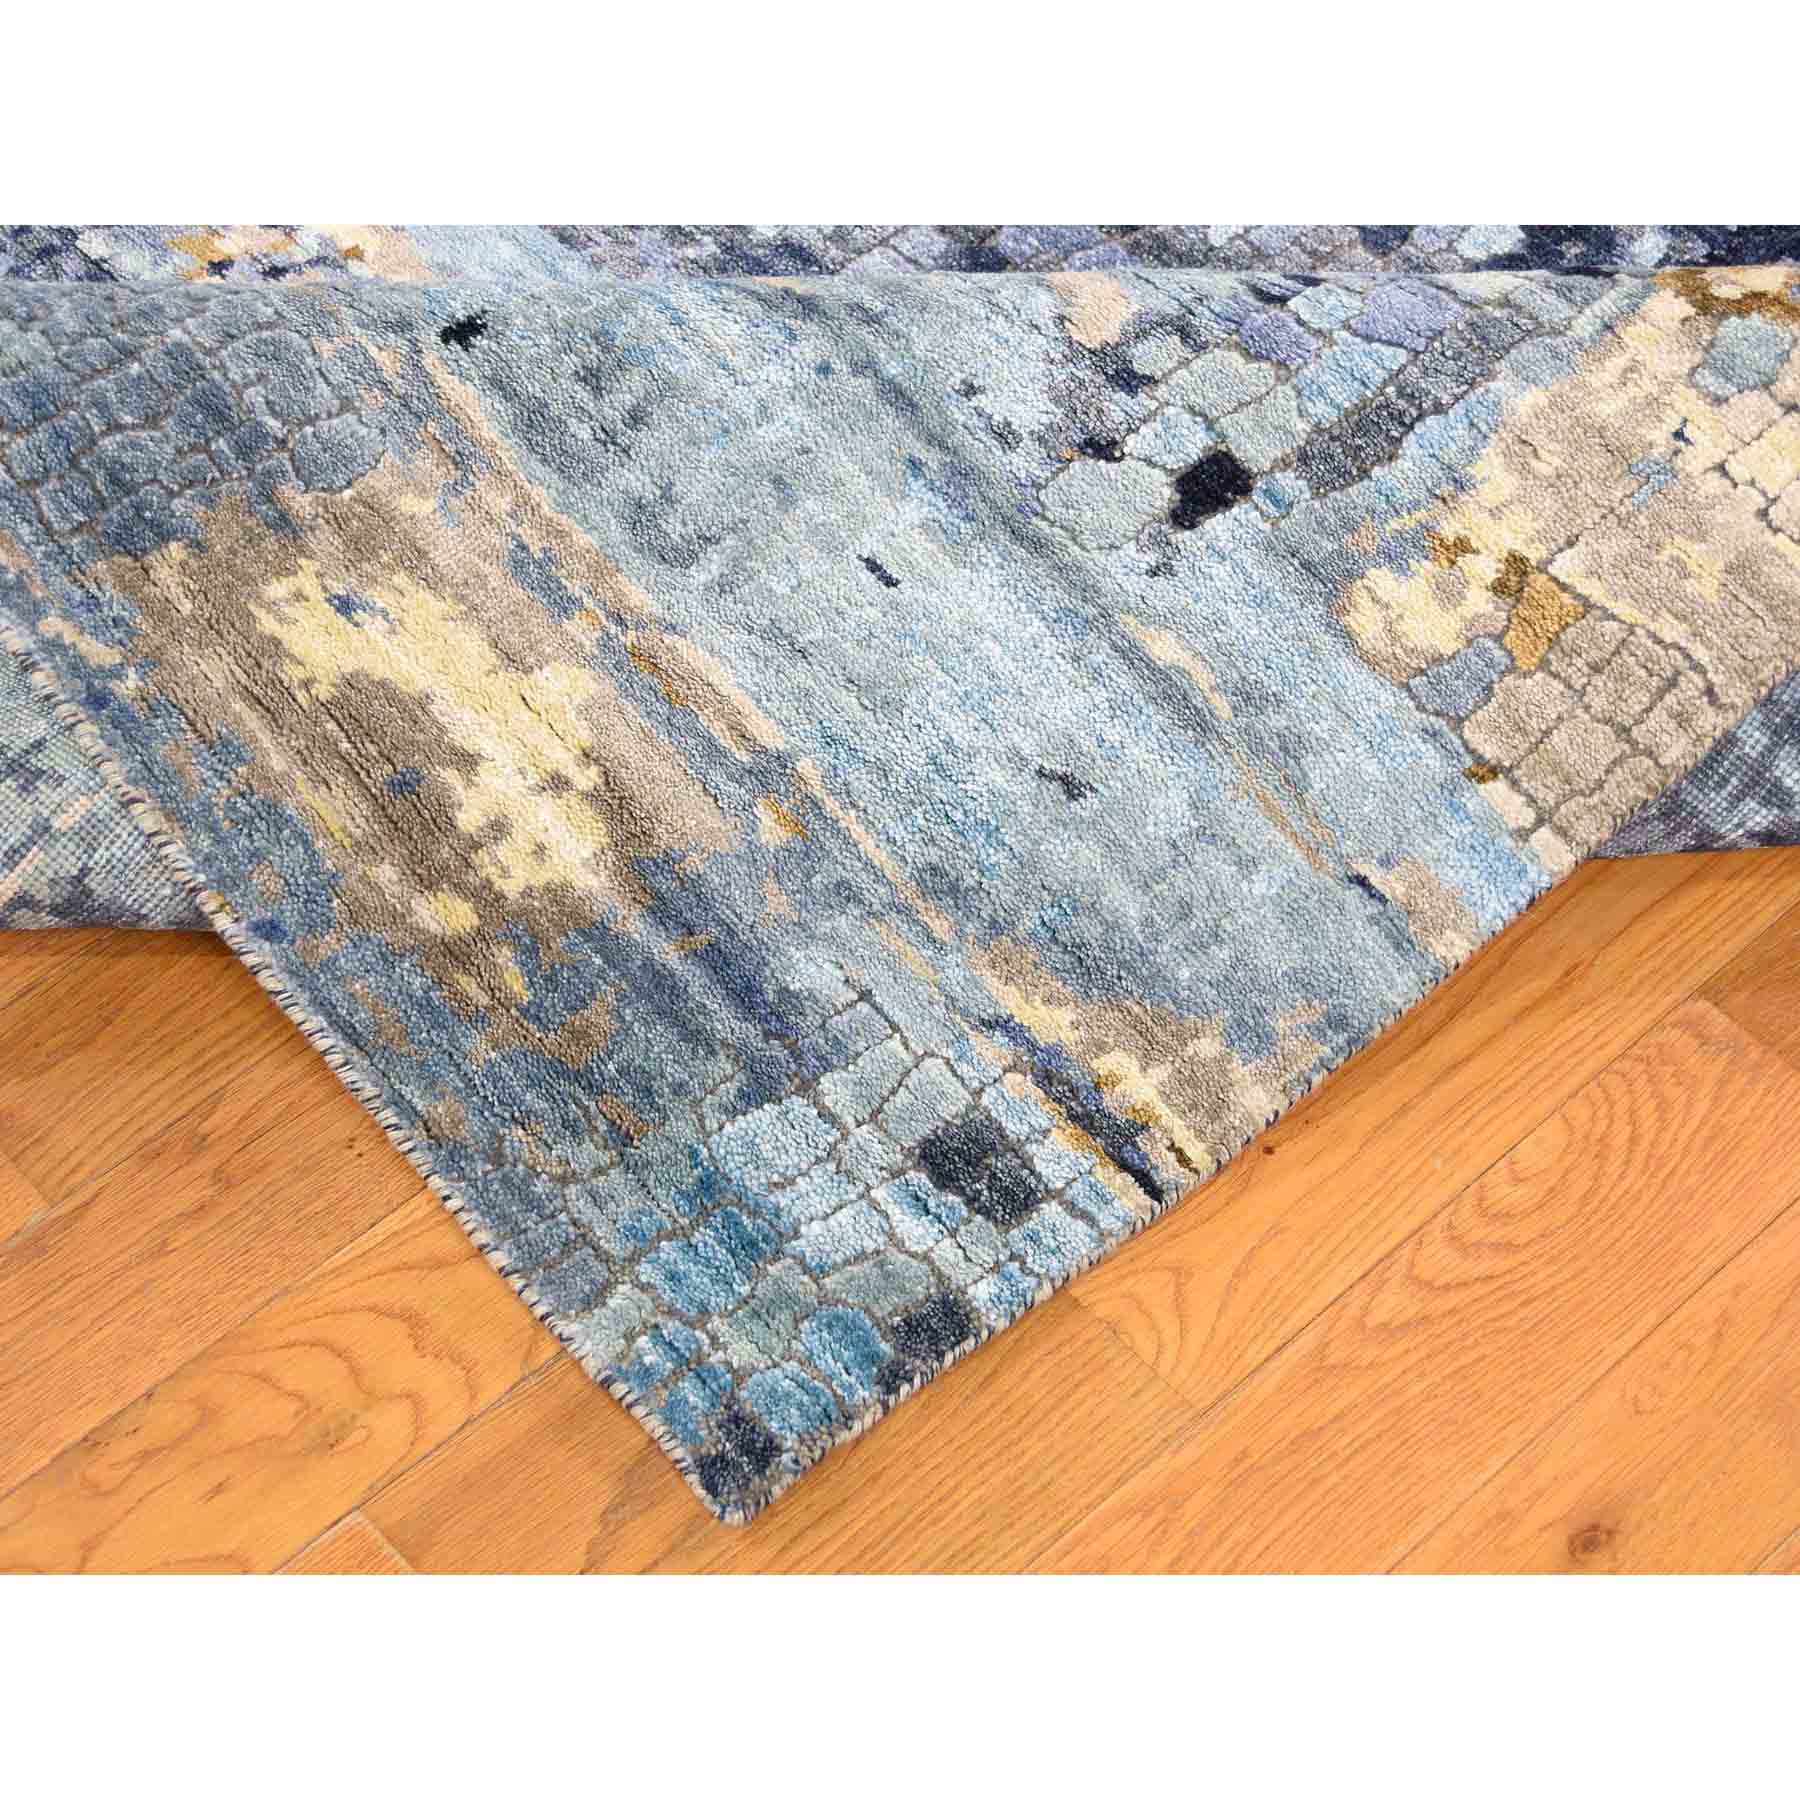 Modern-and-Contemporary-Hand-Knotted-Rug-233180